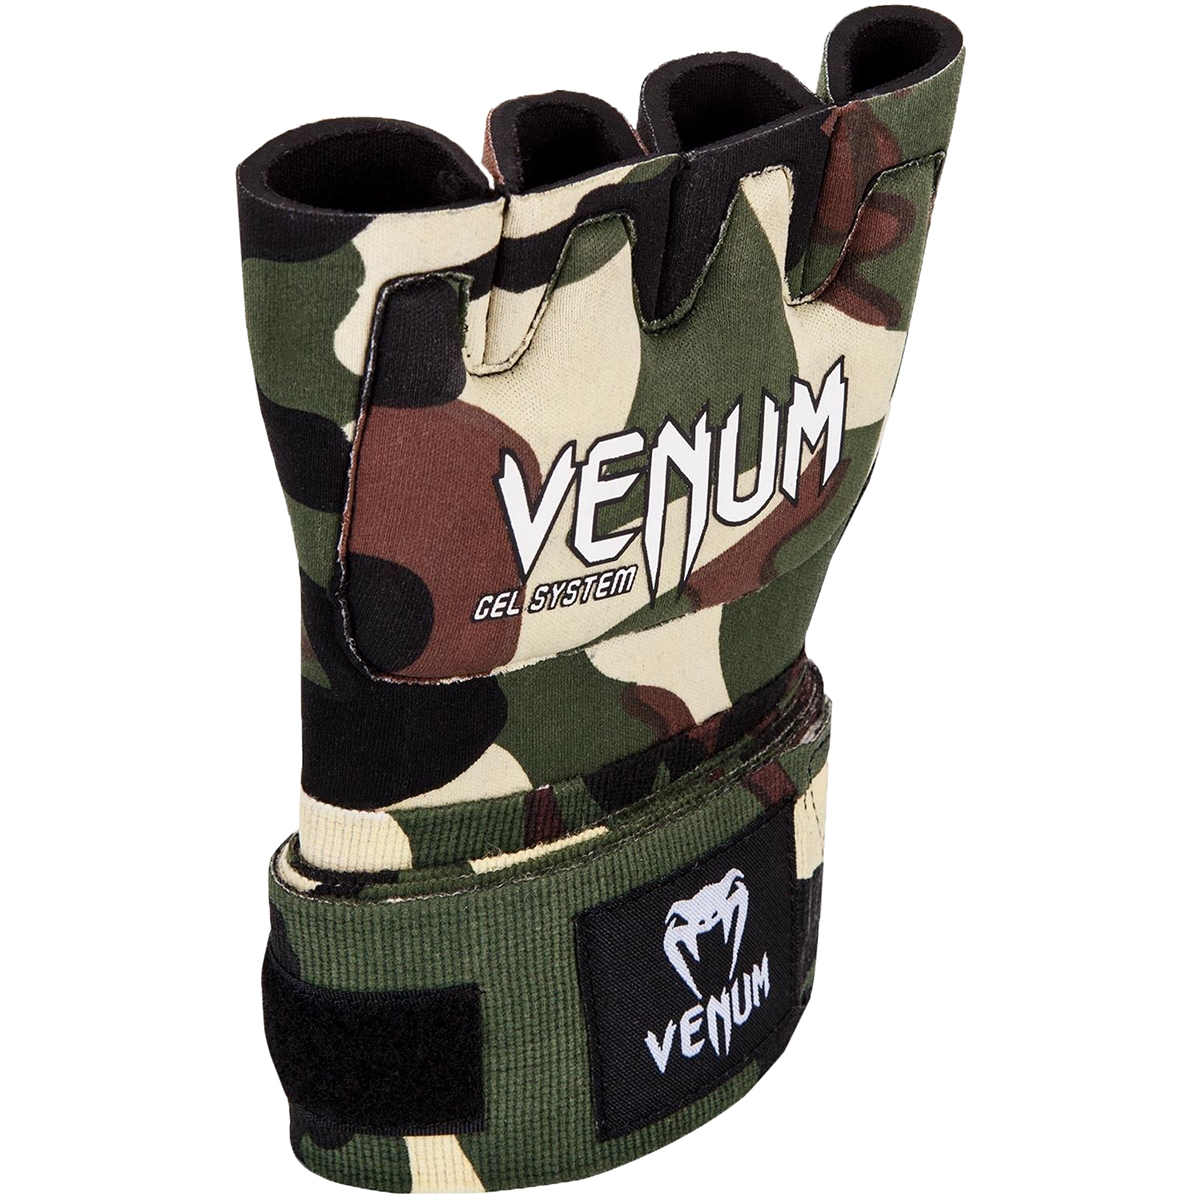 Venum-Kontact-Protective-Shock-Absorbing-Gel-MMA-Glove-Wraps thumbnail 25